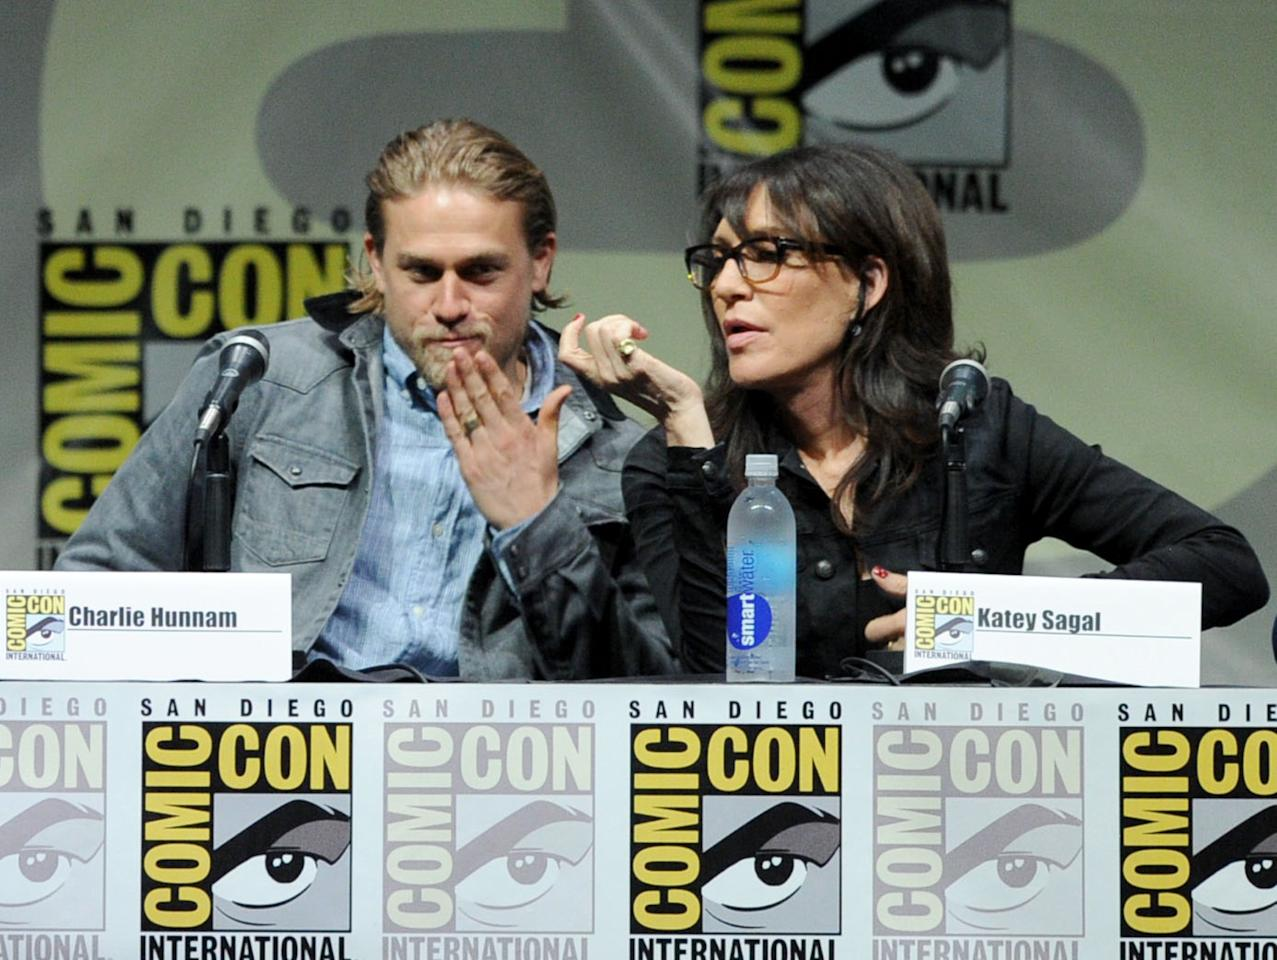 """SAN DIEGO, CA - JULY 21: Actors Charlie Hunnam (L) and Katey Sagal speak onstage at the """"Sons Of Anarchy"""" panel during Comic-Con International 2013 at San Diego Convention Center on July 21, 2013 in San Diego, California. (Photo by Kevin Winter/Getty Images)"""